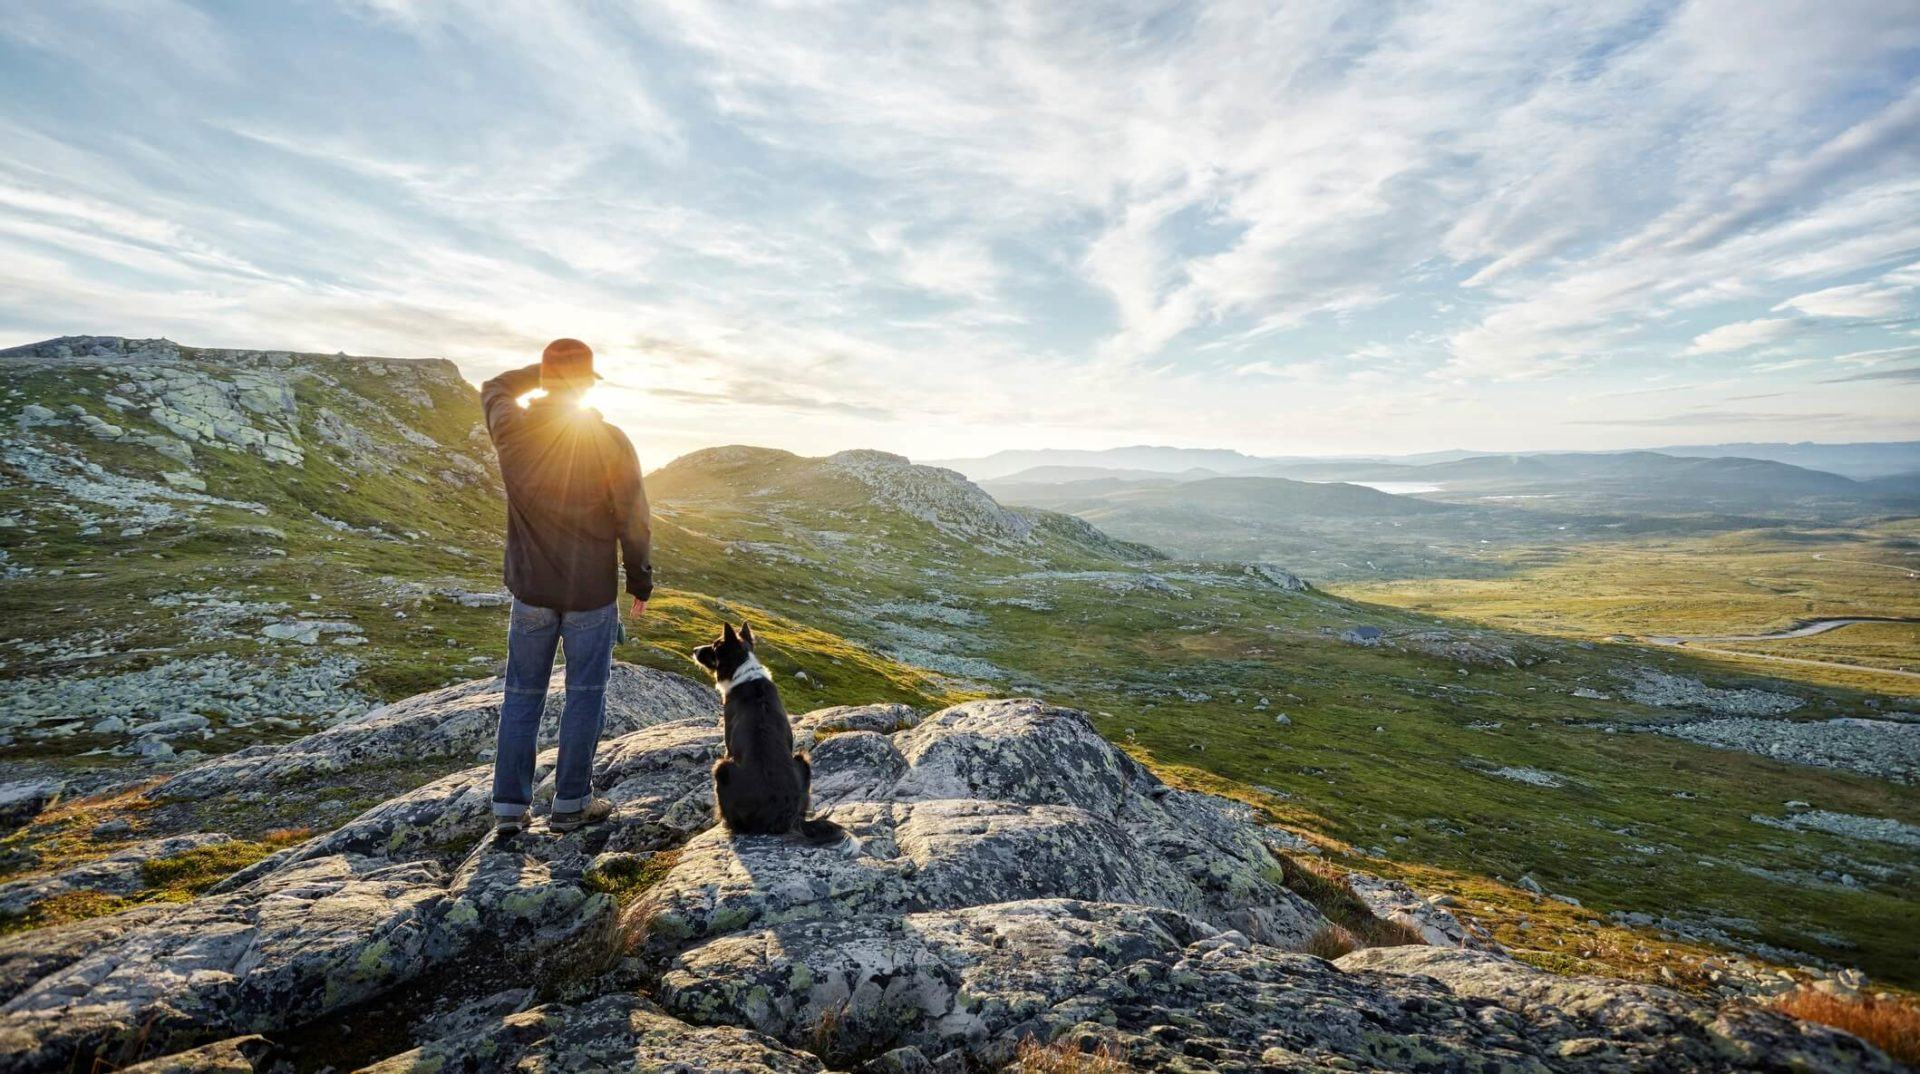 Man and dog watching sunrise over hills